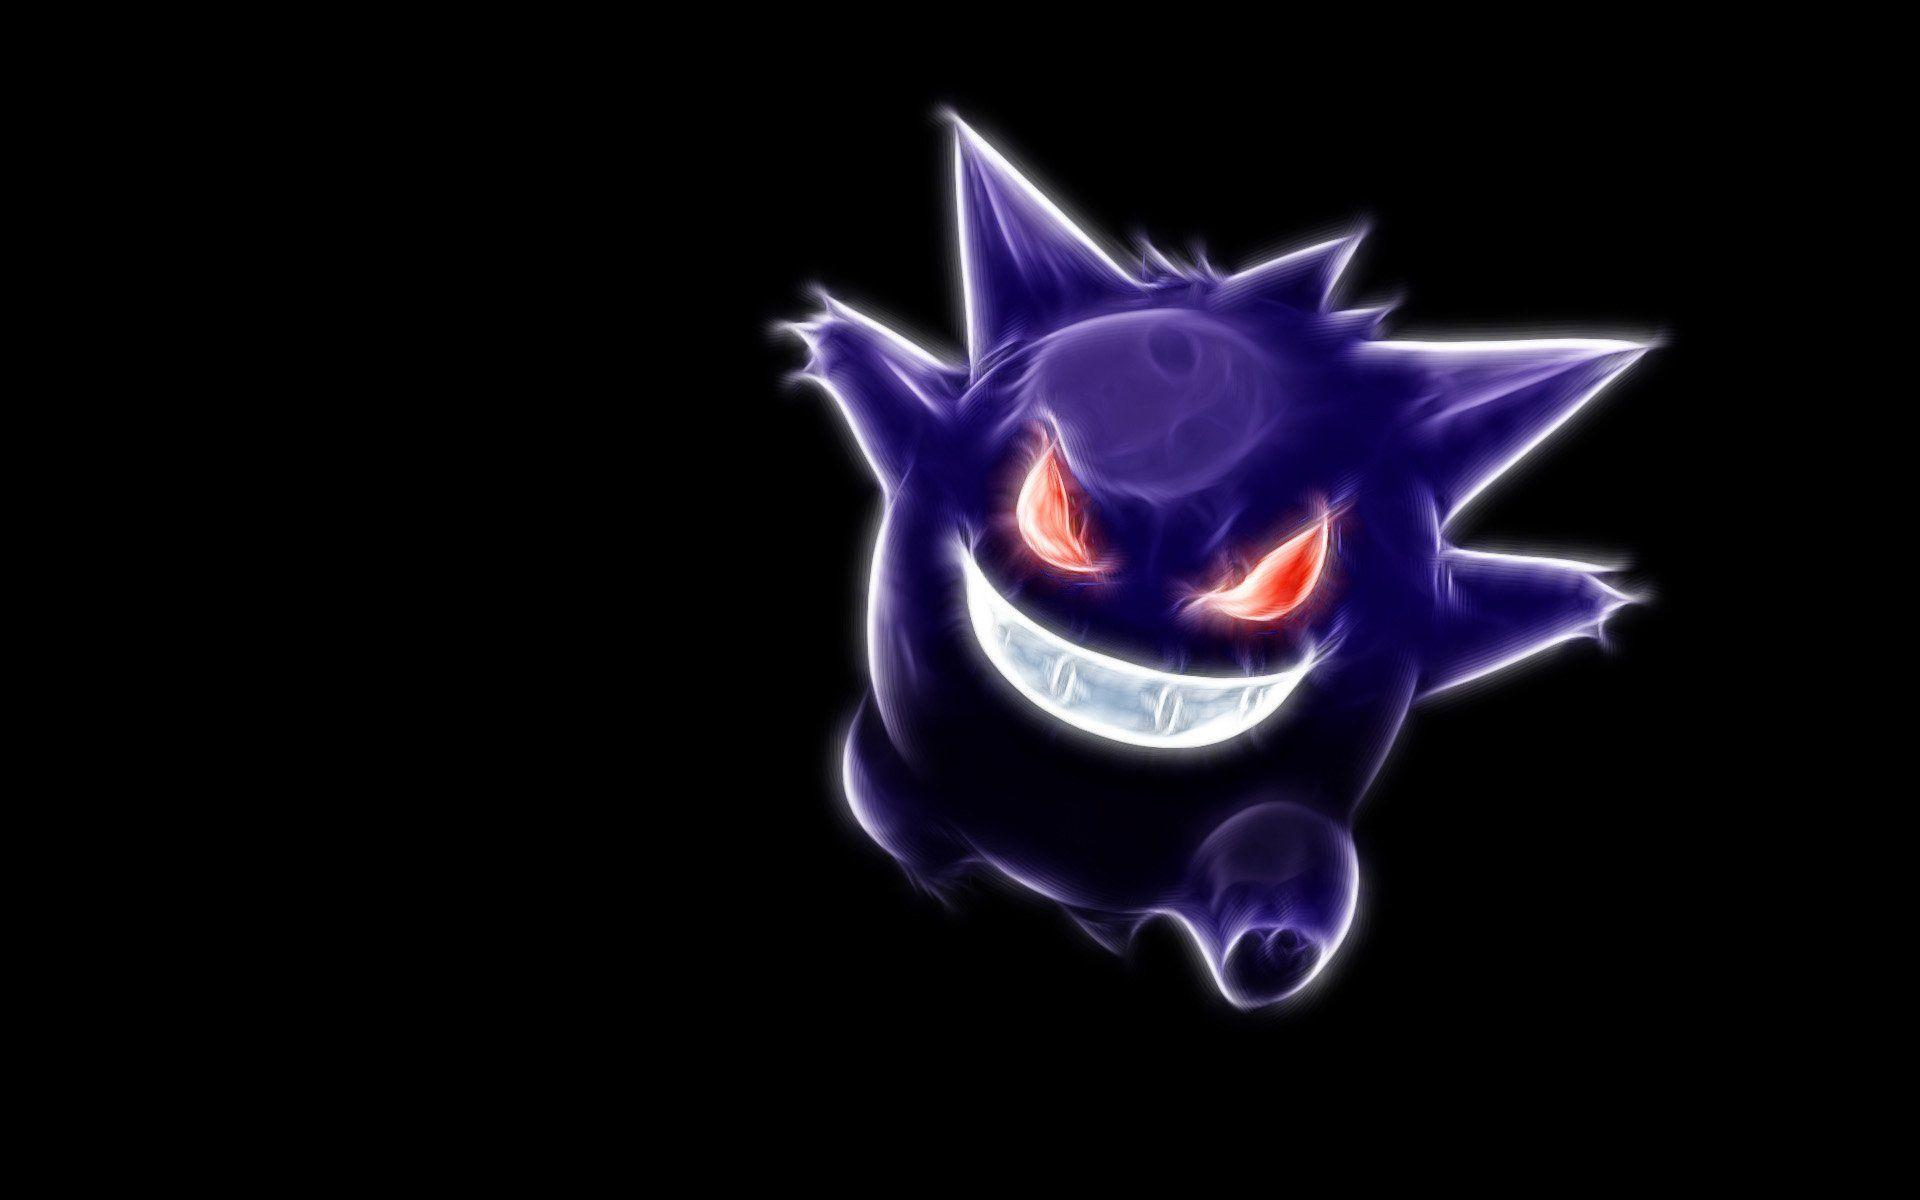 29 Gengar (Pokémon) HD Wallpapers | Background Images - Wallpaper ...